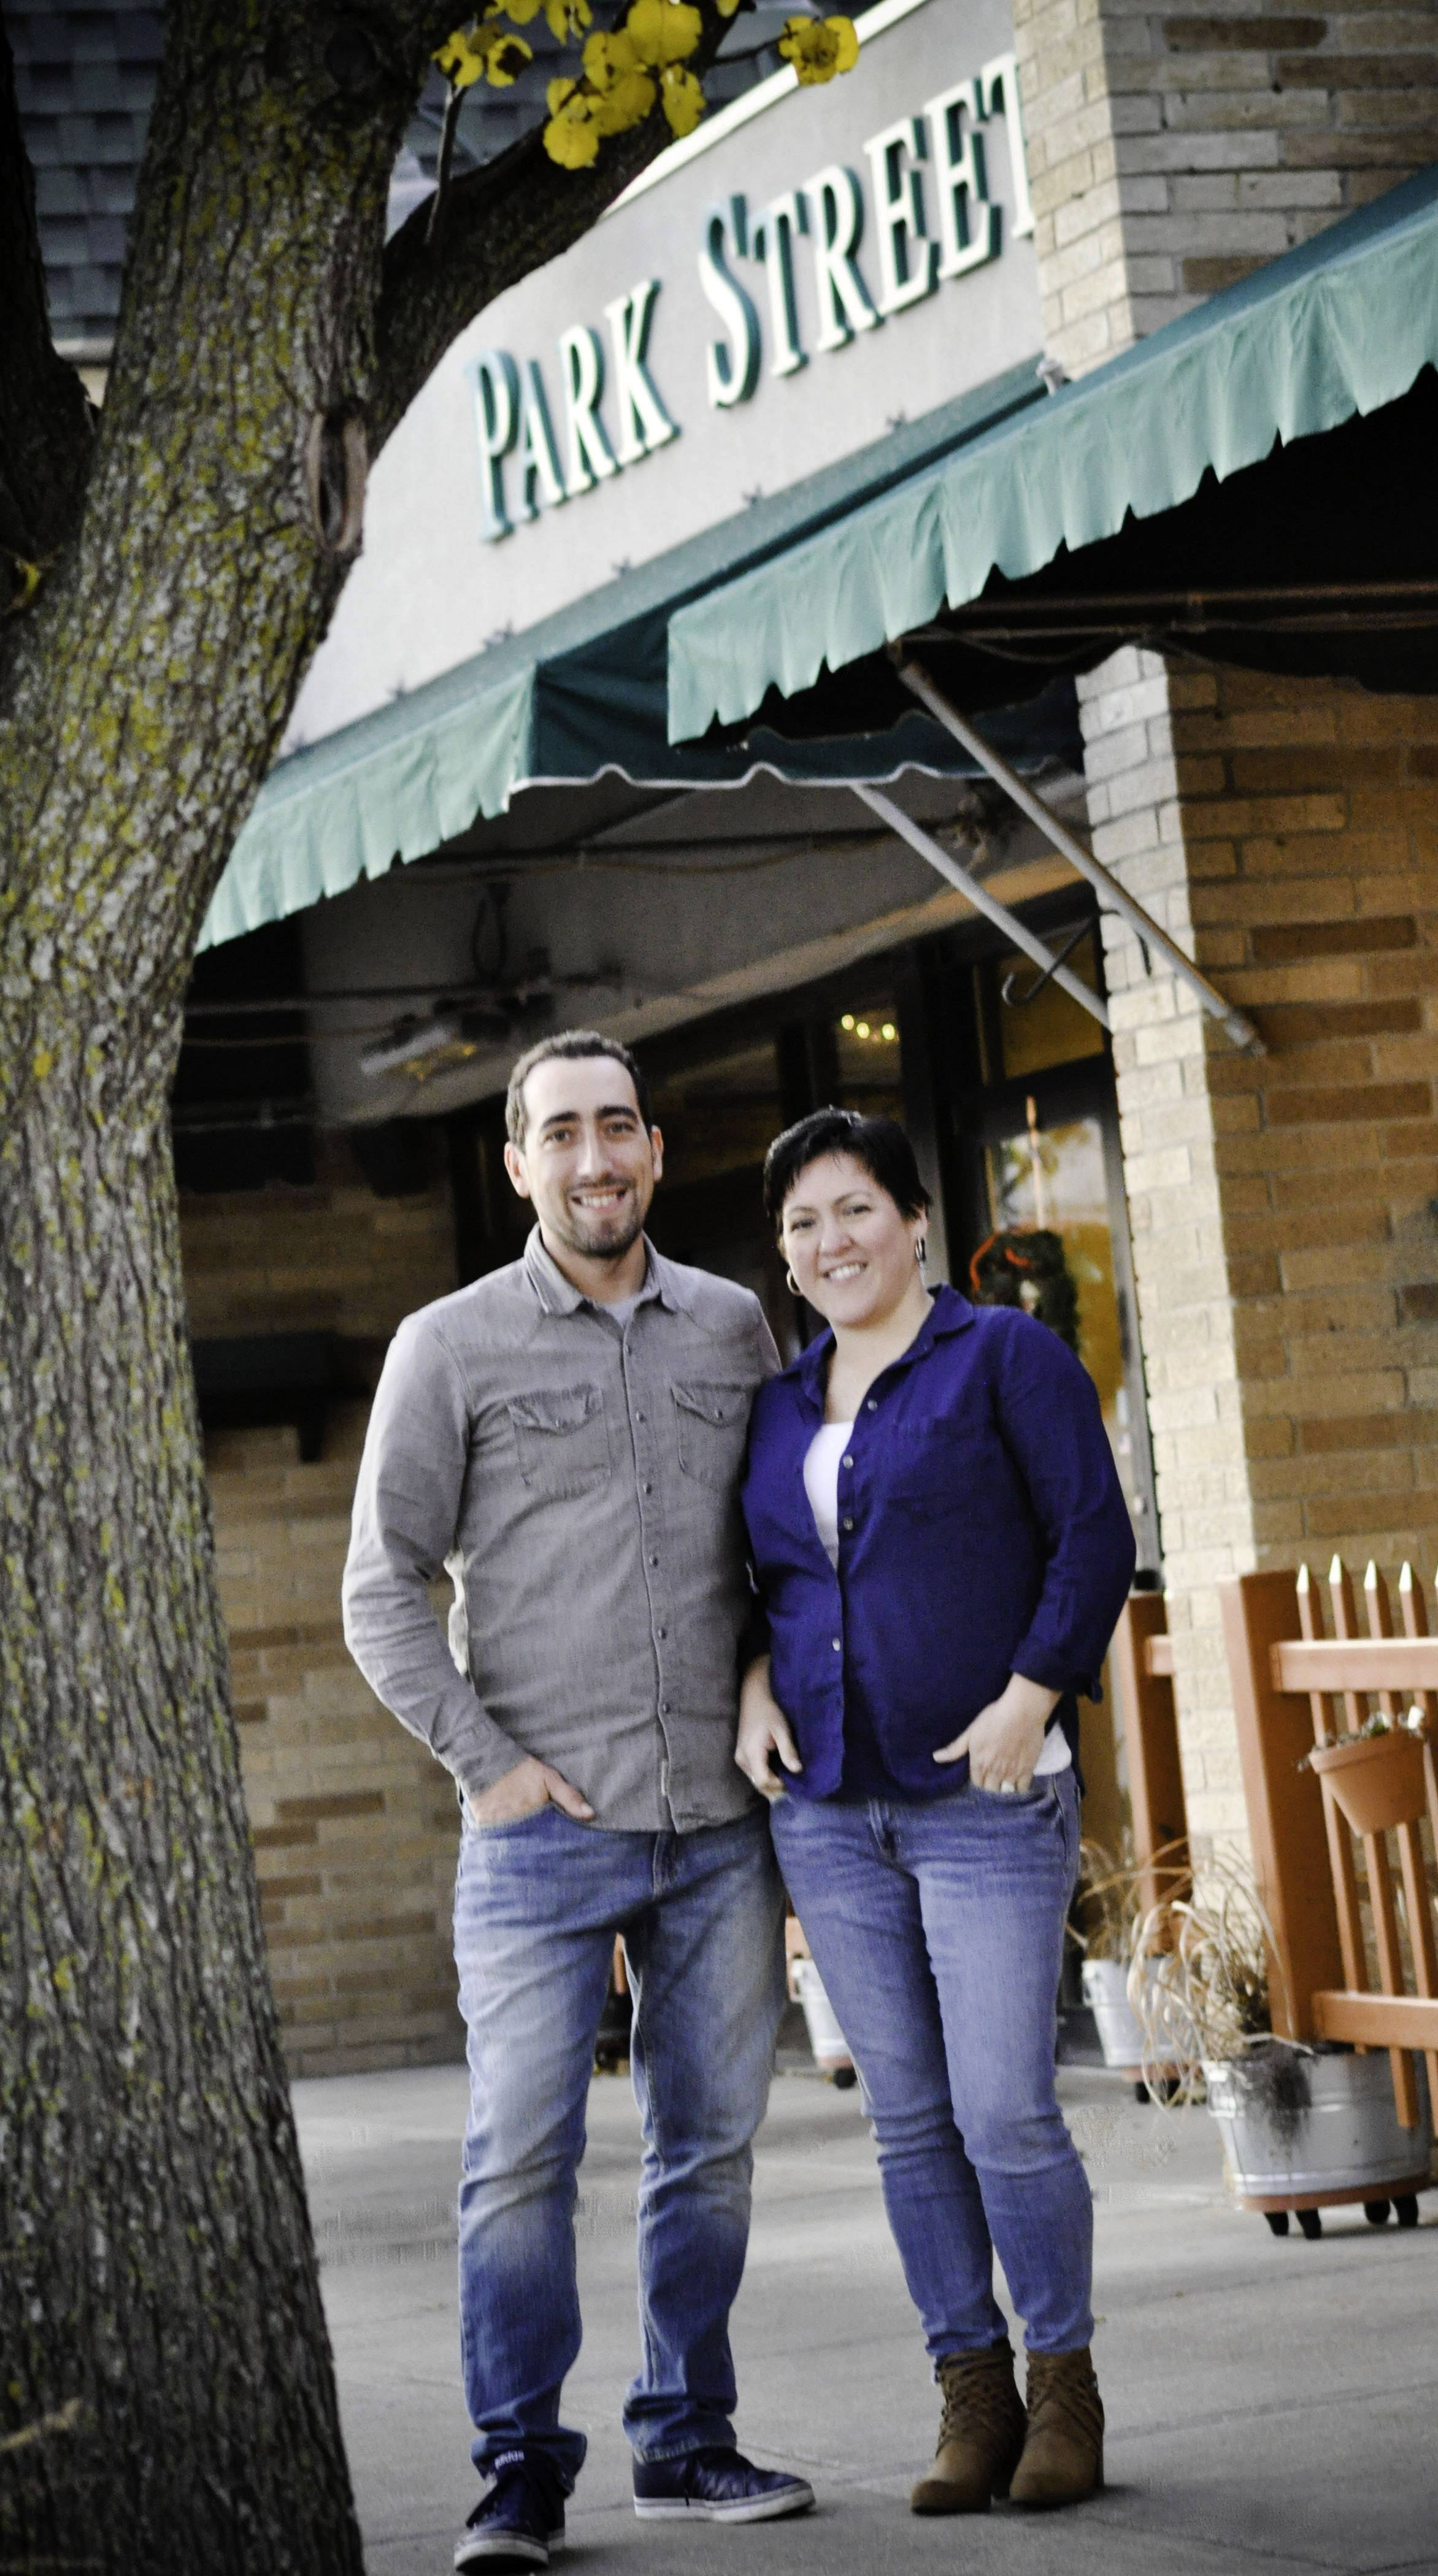 New owners for Mundelein's Park Street Restaurant